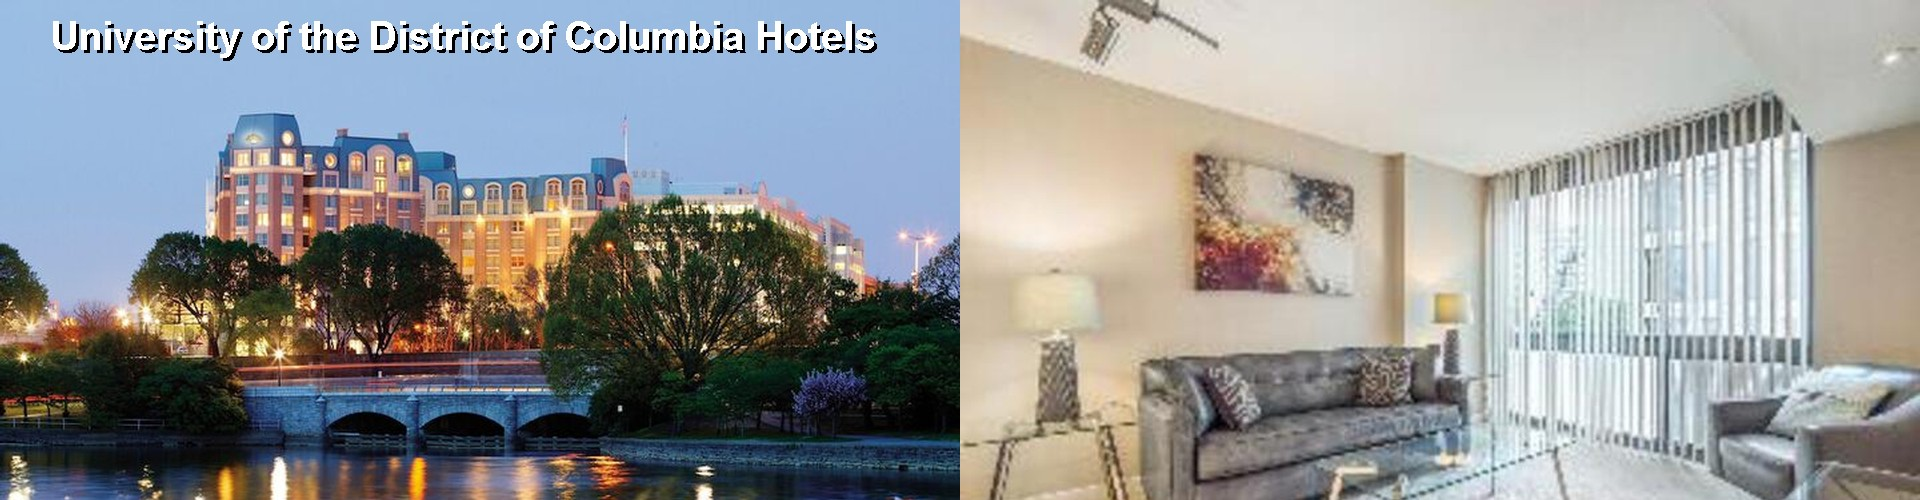 5 Best Hotels near University of the District of Columbia